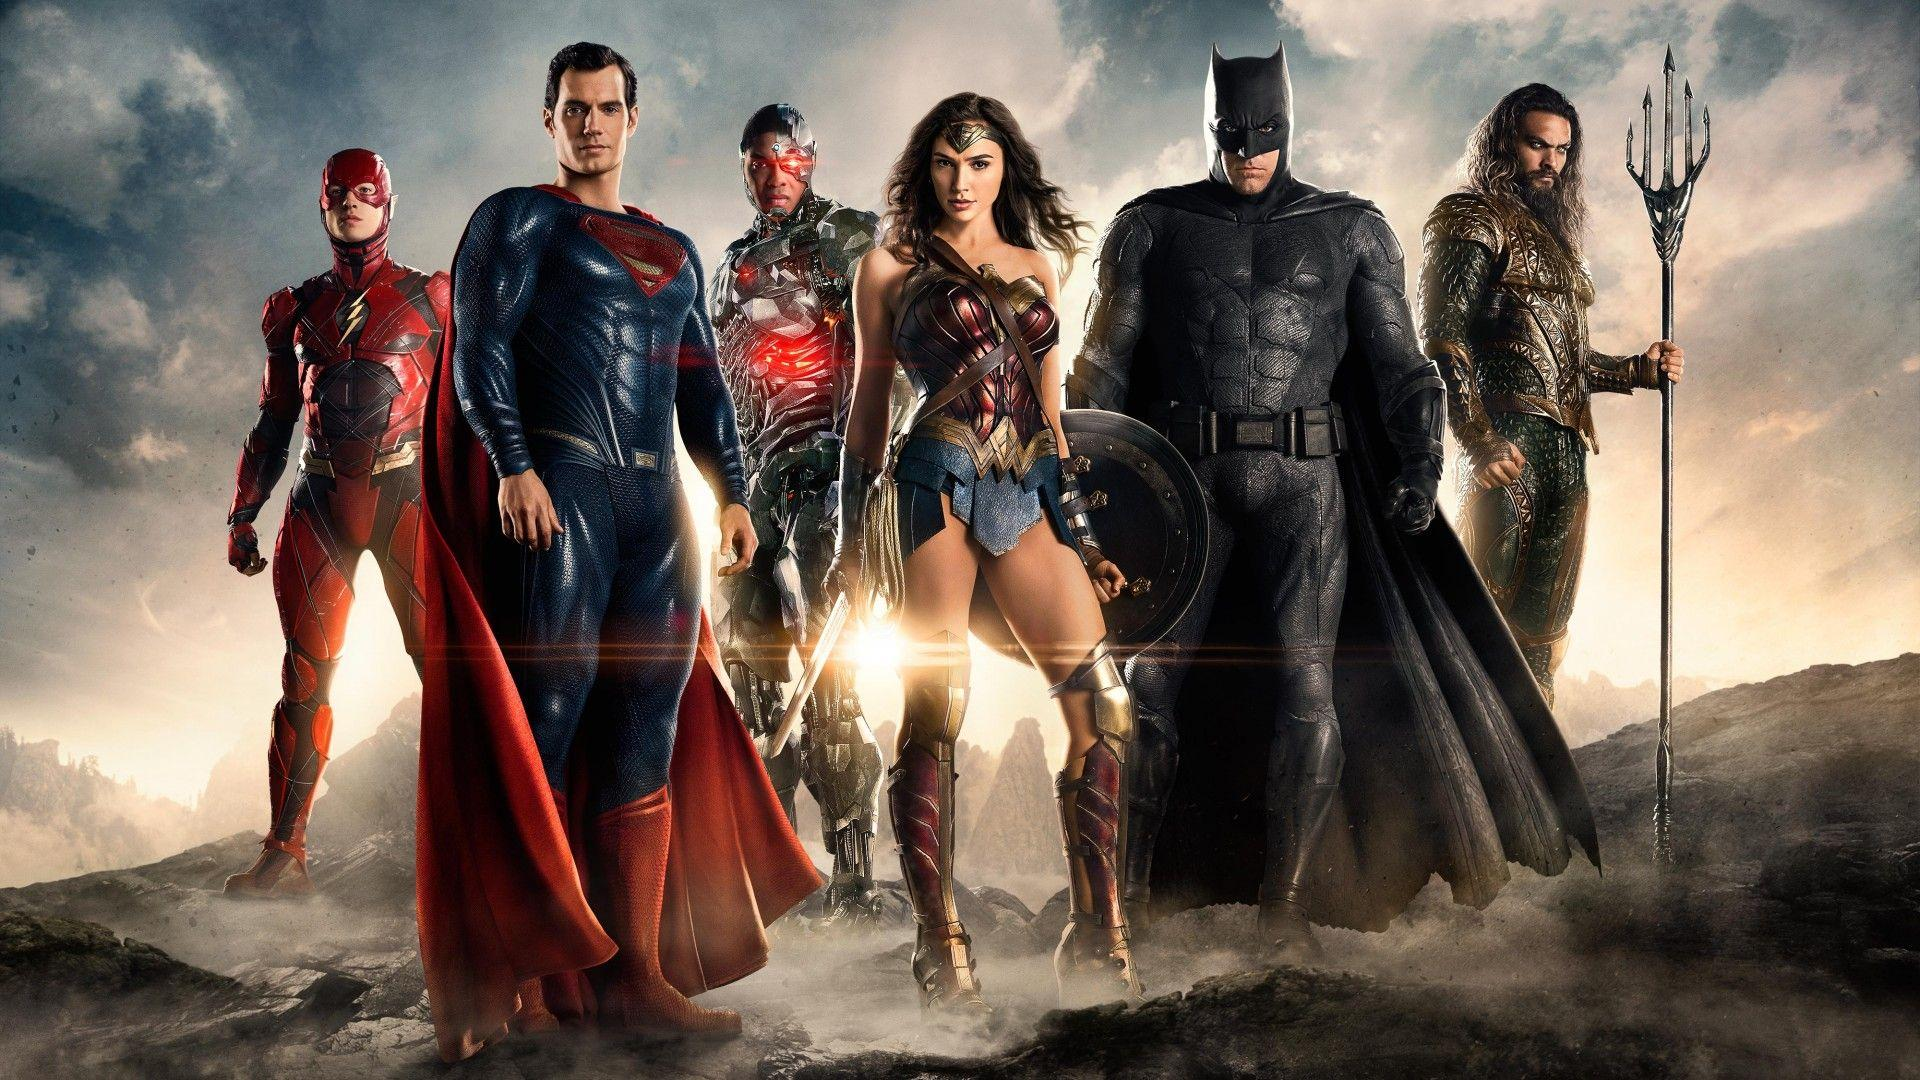 Wallpapers Justice League, 2017 Movies, Flash, Superman, Wonder